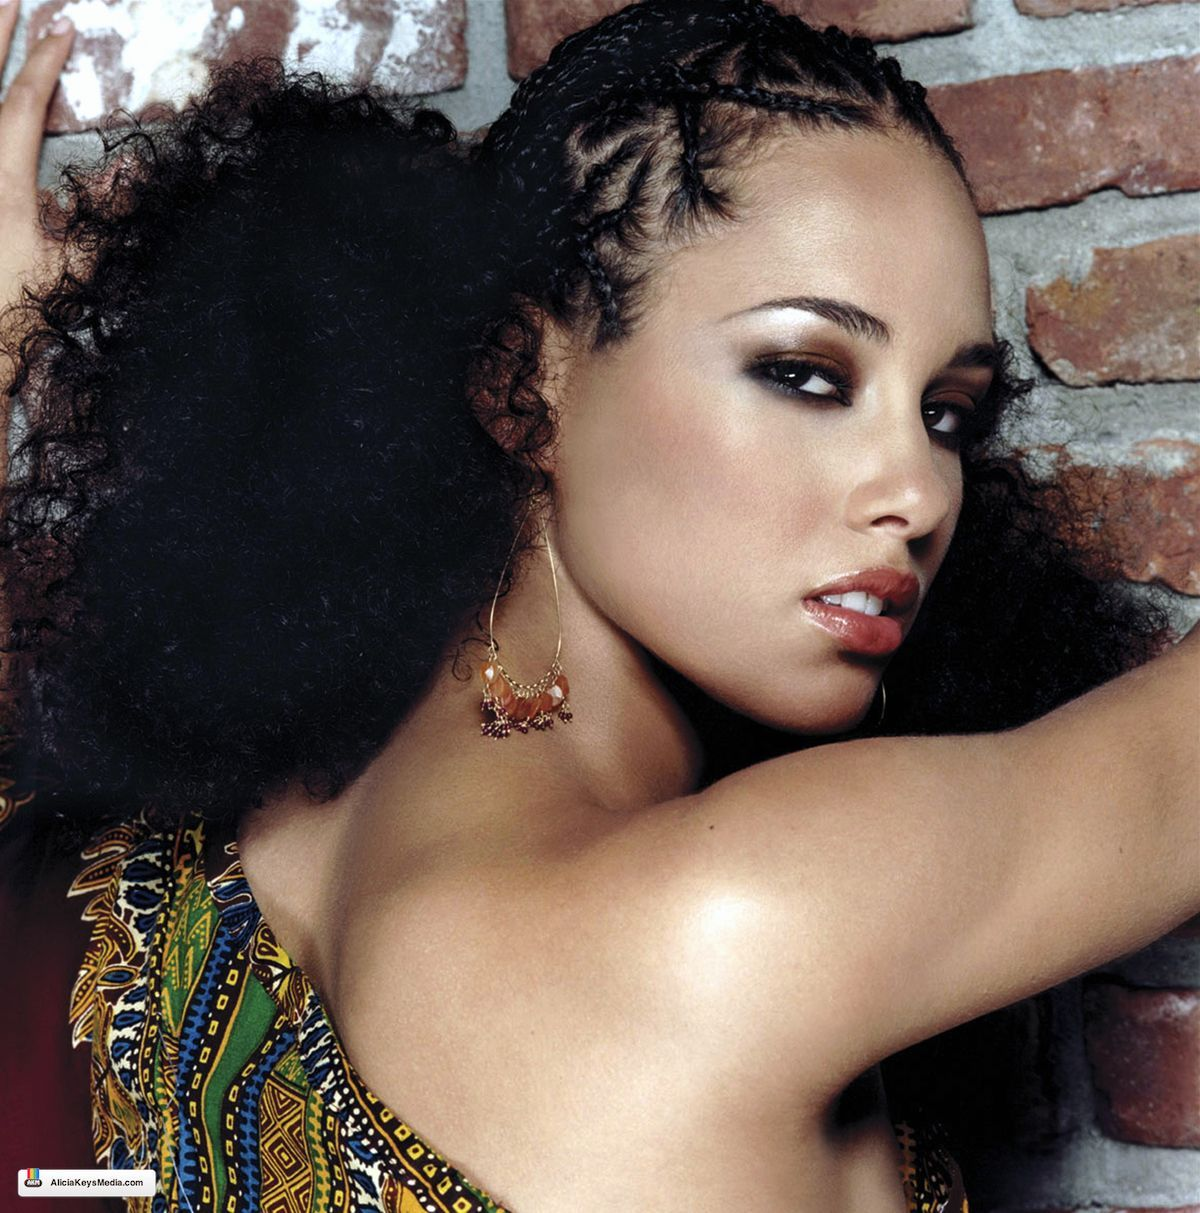 Alicia Keys Puff Braid Hairstyle From You Don T Know My Name Single Release Cover Alicia Keys Hairstyles Hair Styles Curly Hair Solutions